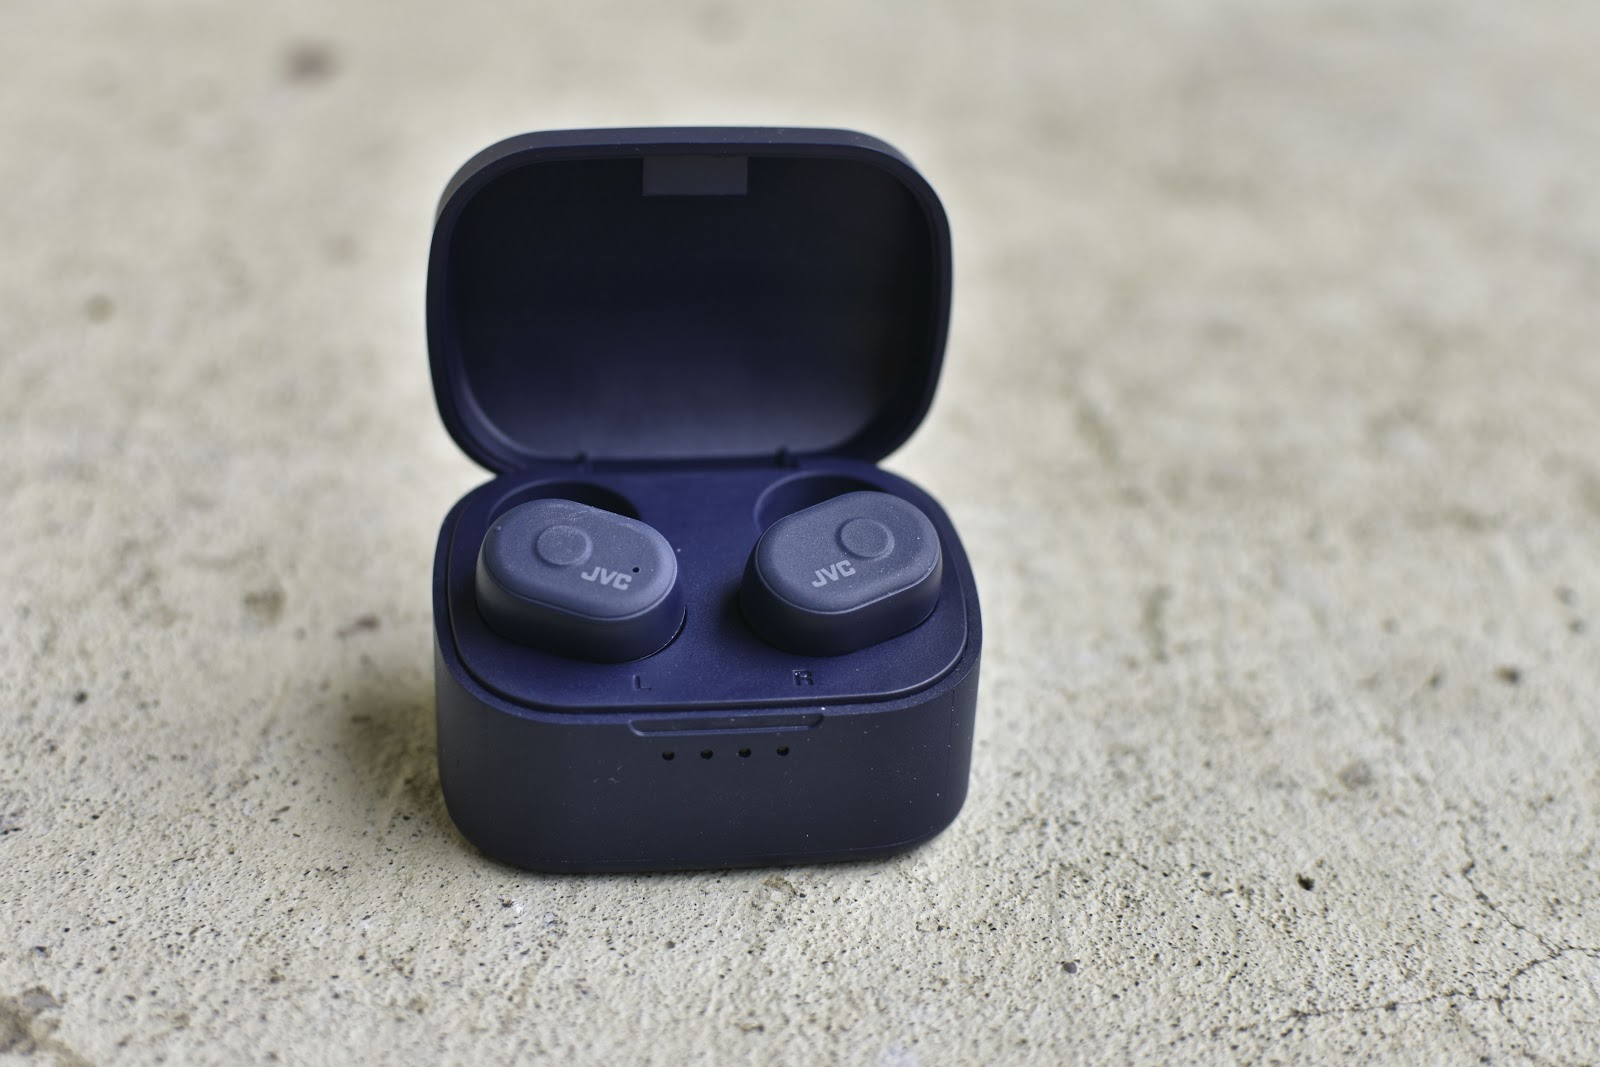 JVC HA-A10T headphones outside of the box and in their charging case